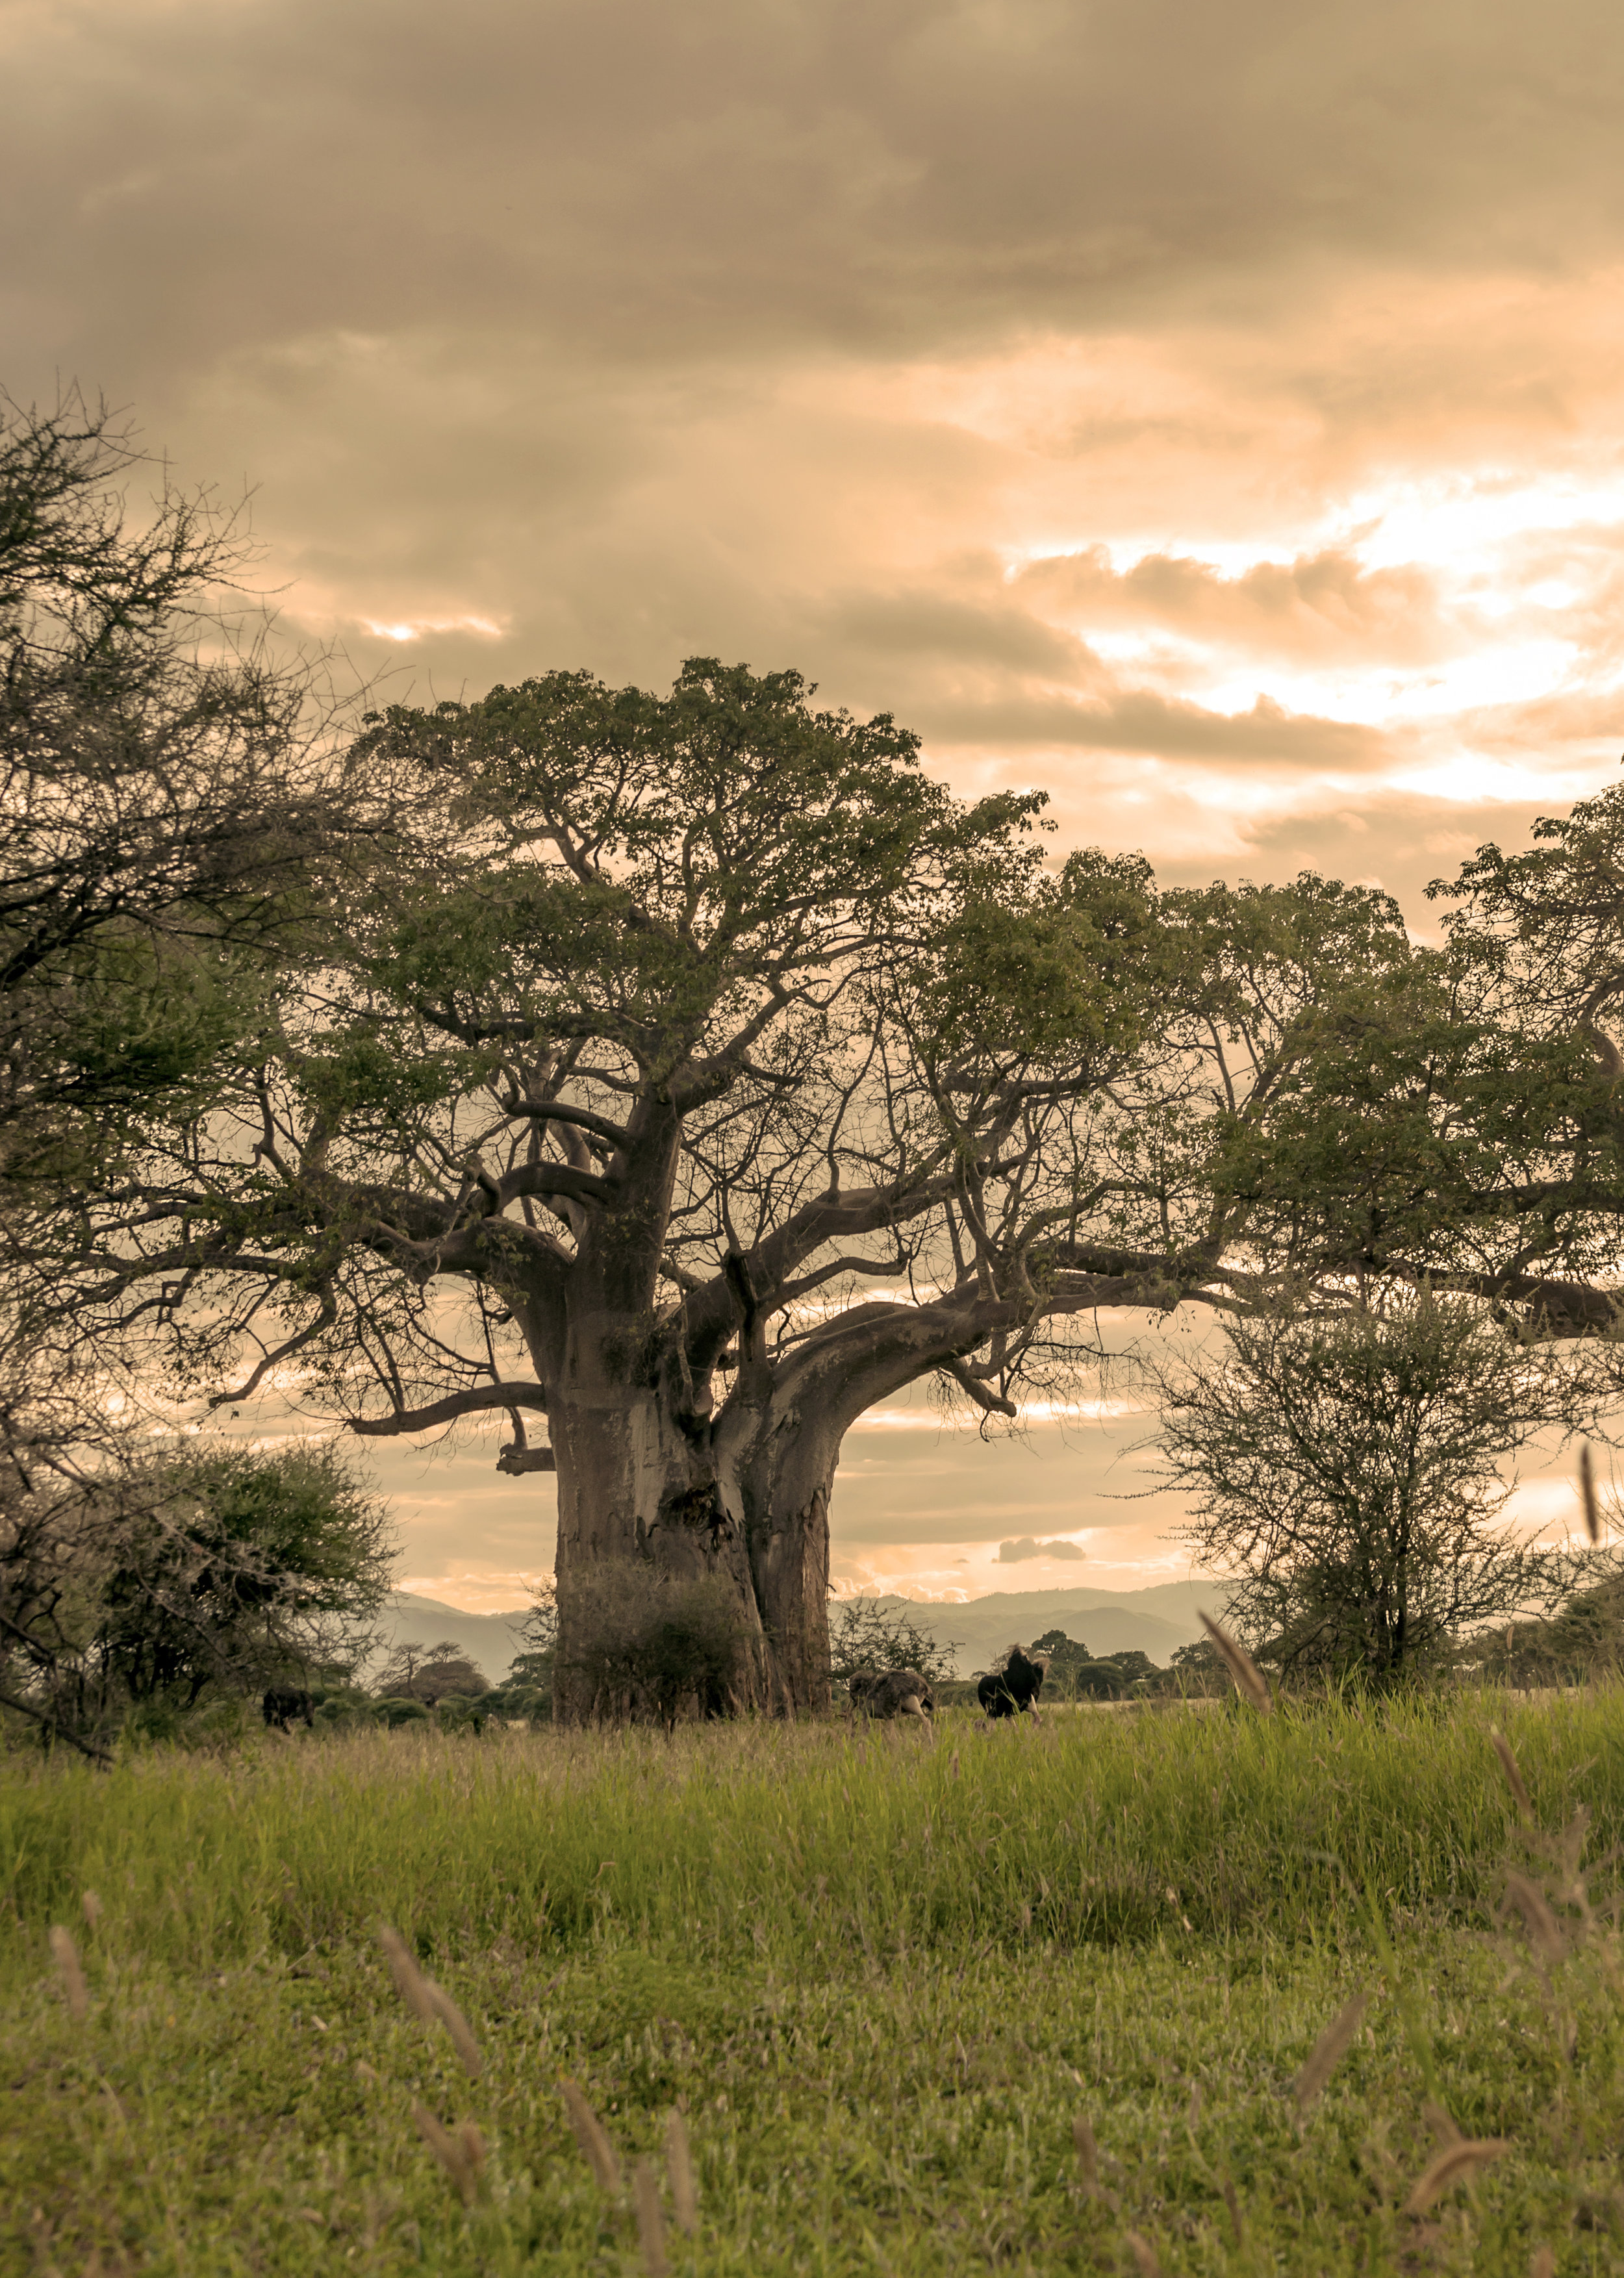 Acacias in Kenya on a cloudy day